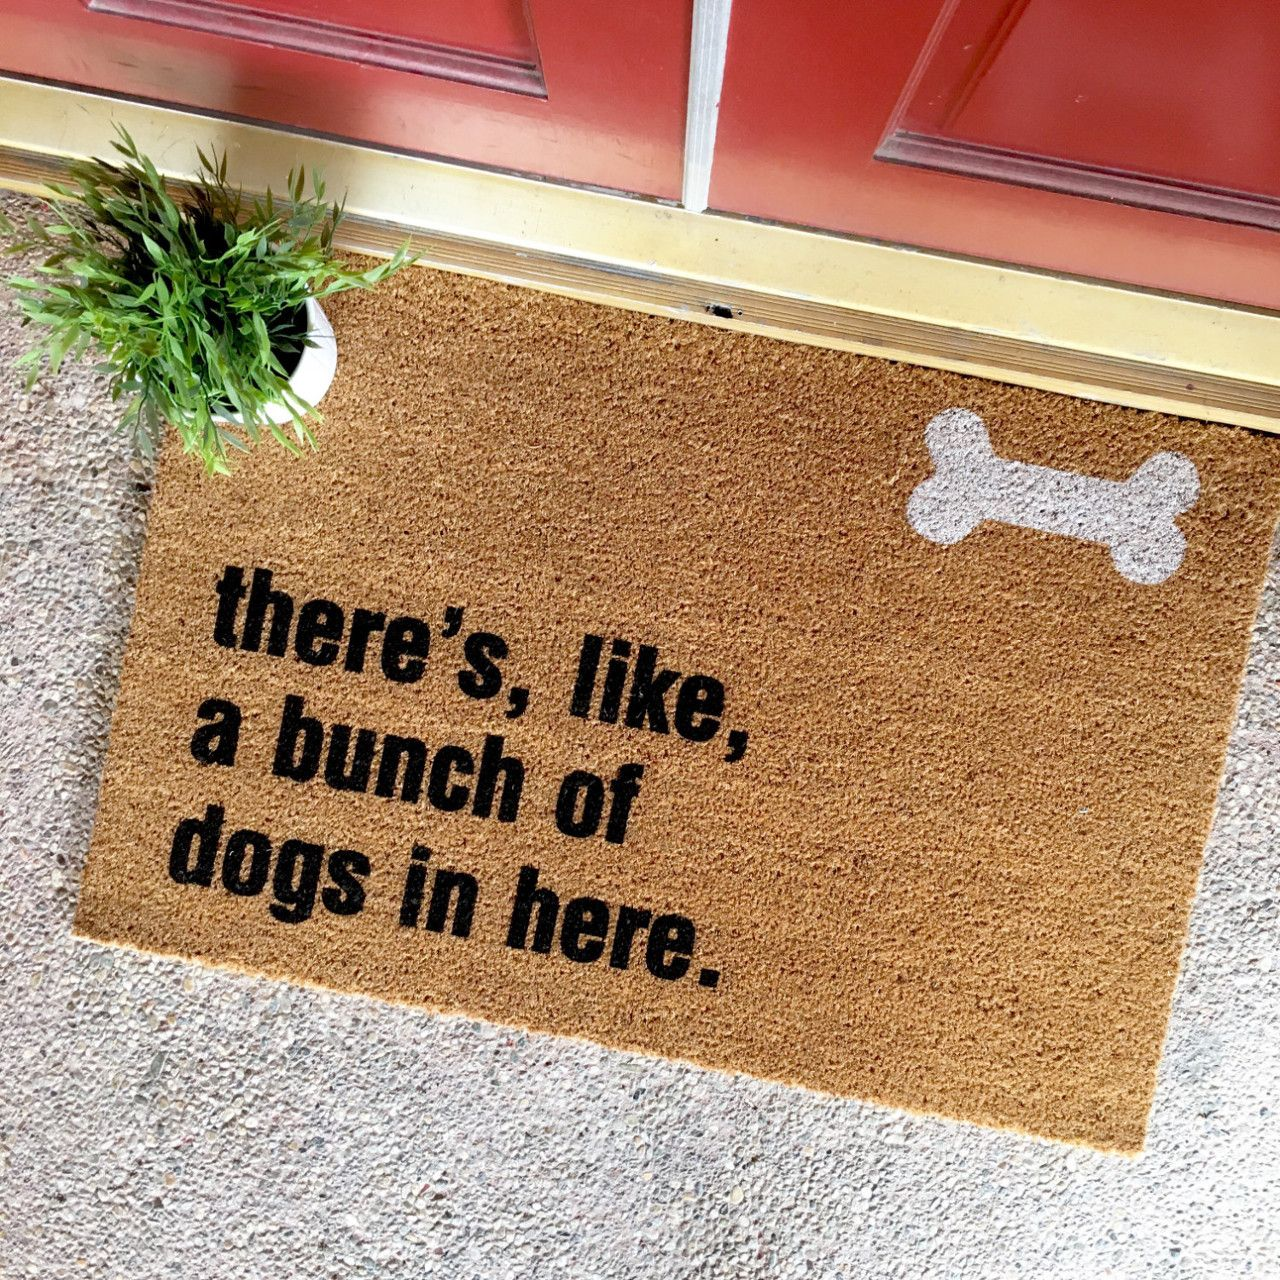 Gentil Bunch Of Dogs In Here Doormat From The Cheeky Doormat